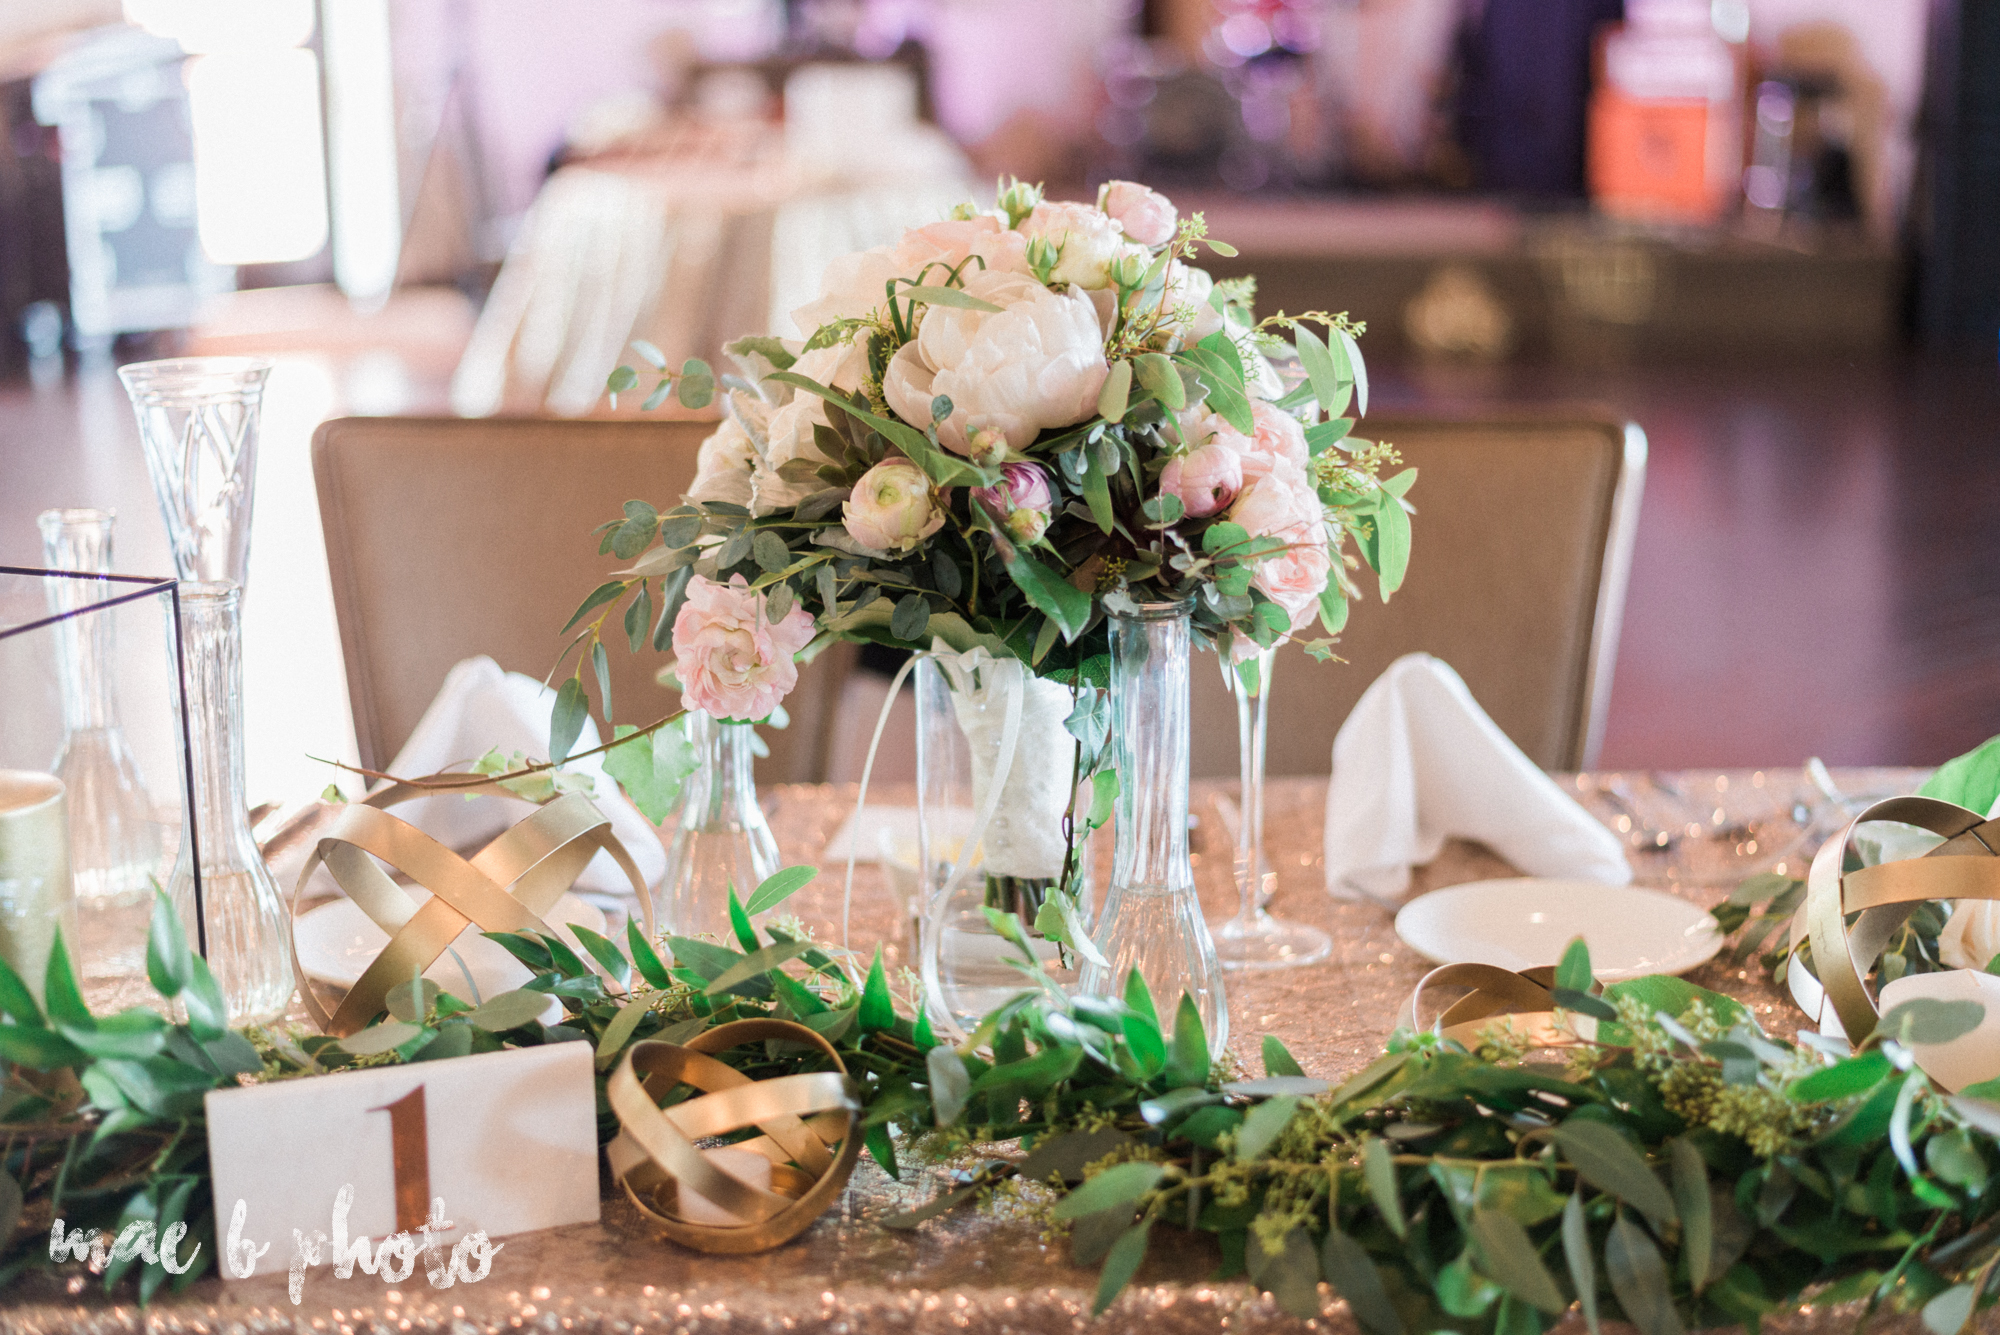 emily and michael's industrial chic summer country club wedding at the lake club in poland ohio photographed by cleveland wedding photographer mae b photo-87.jpg